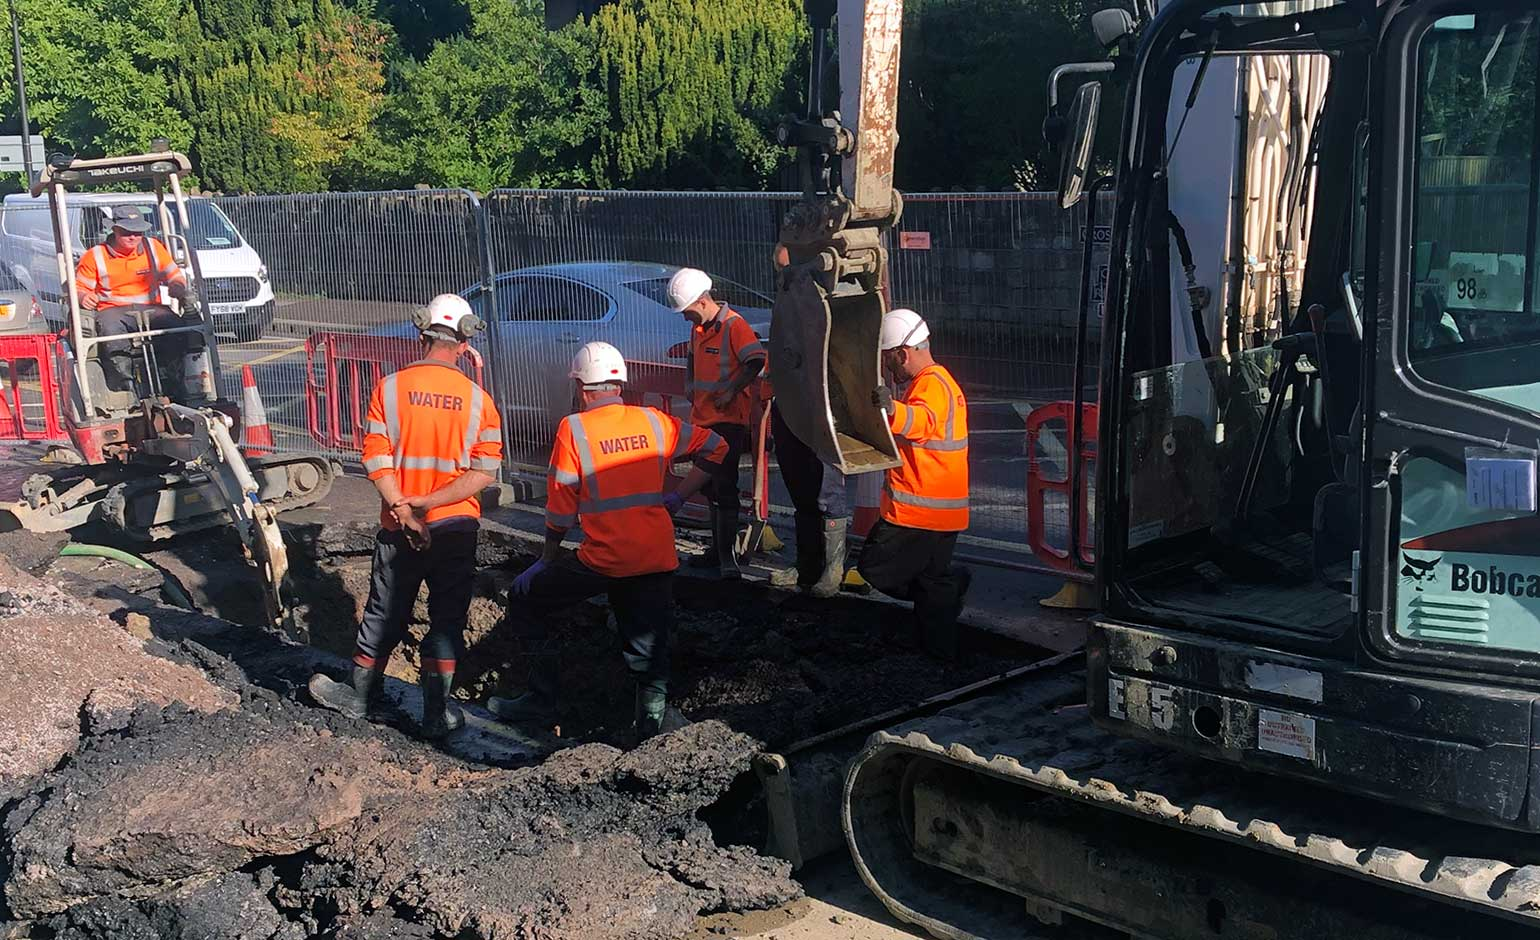 Work continues on the London Road in Bath to repair damaged water main | Bath Echo